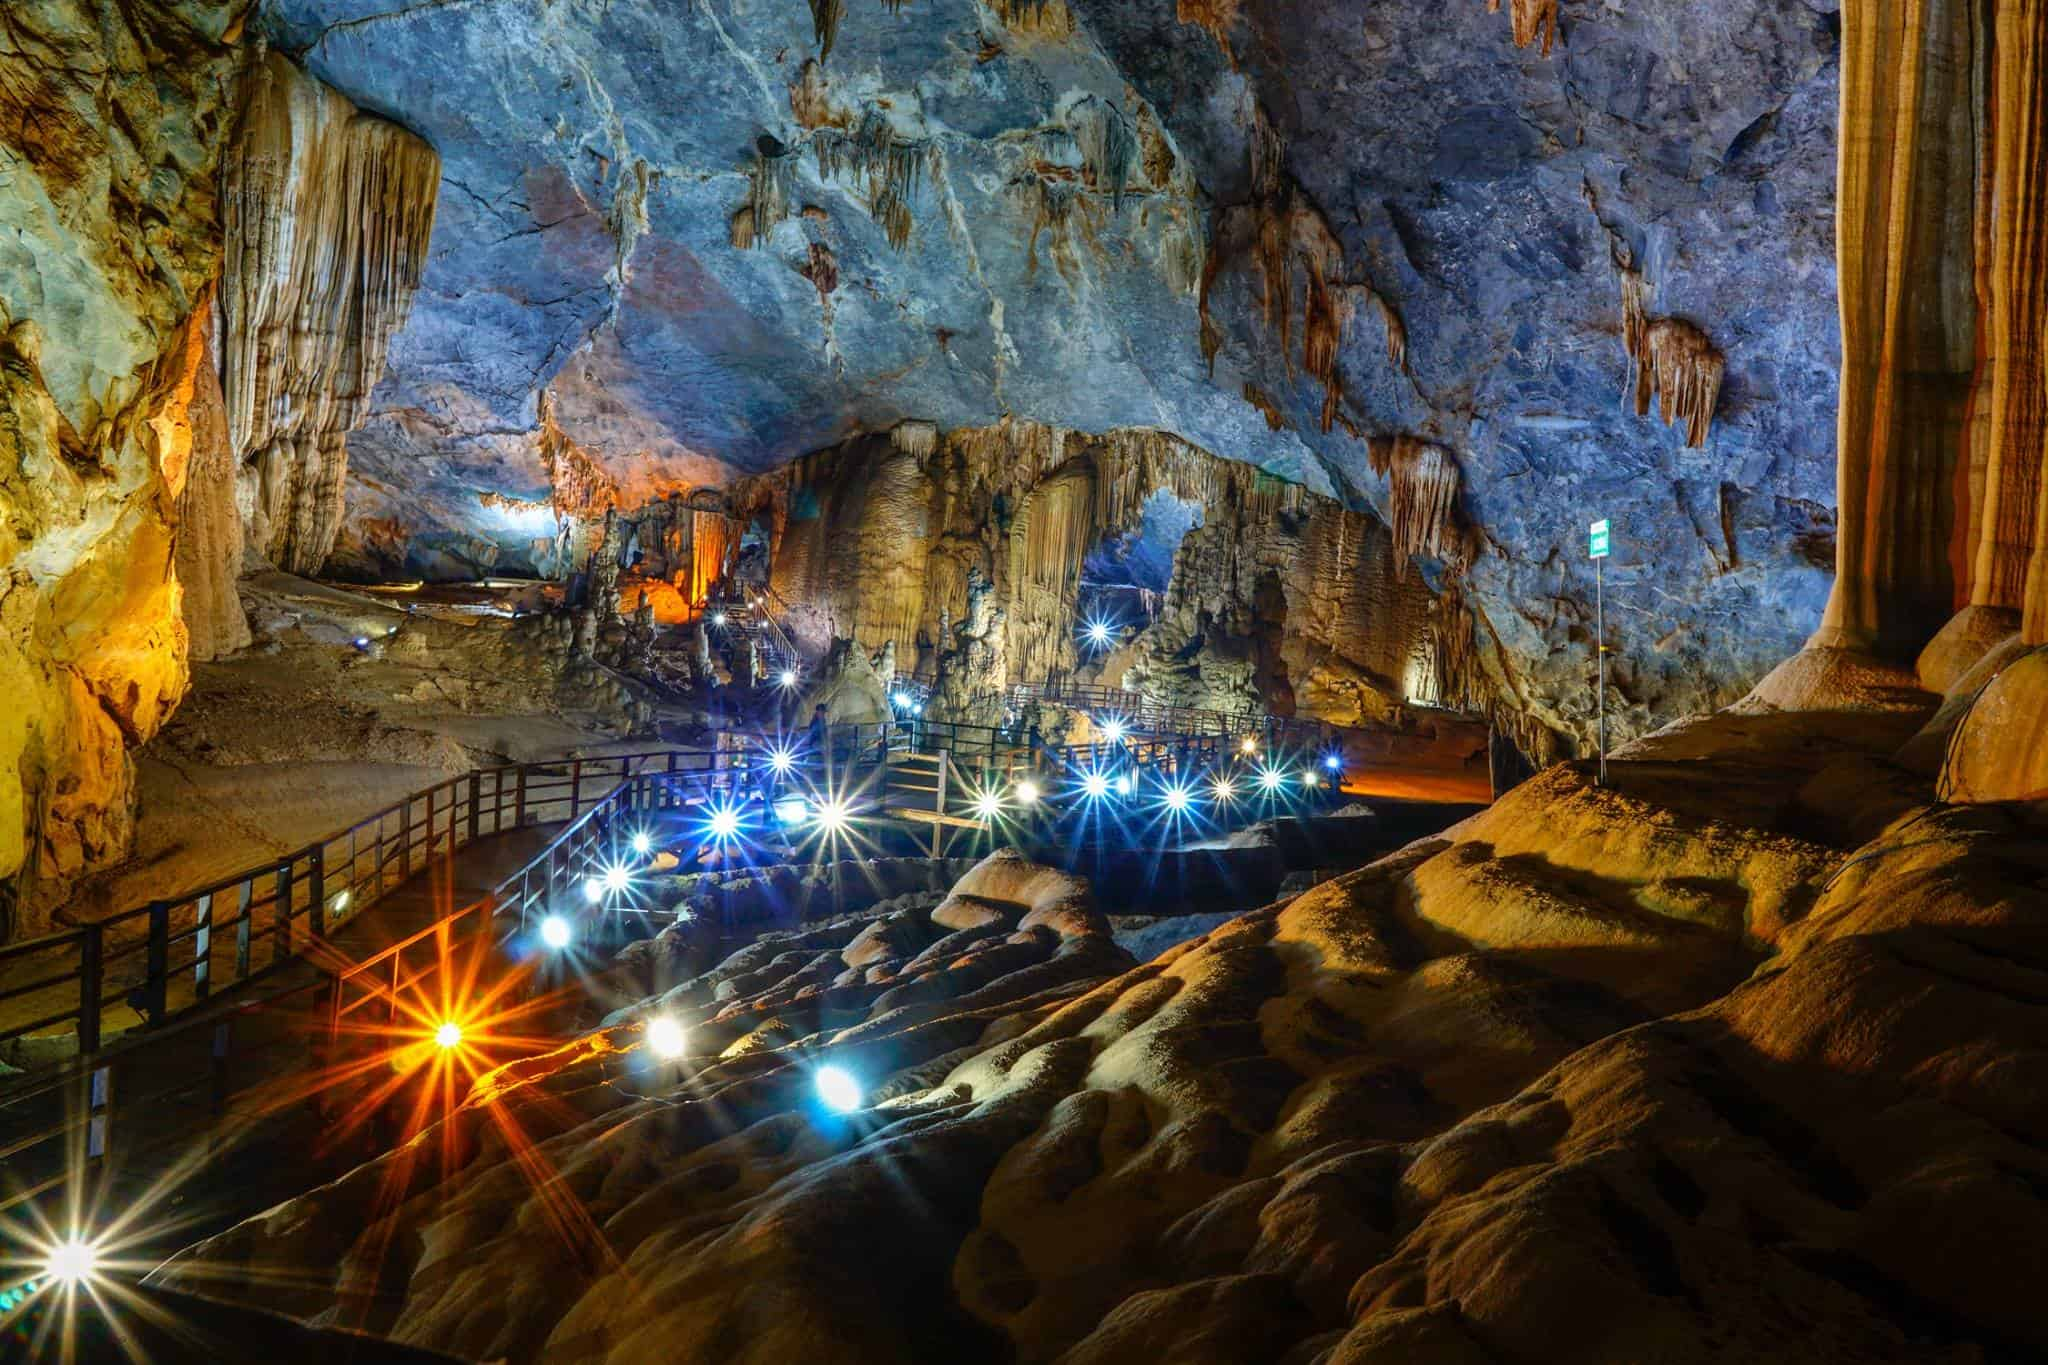 Paradise Cave Discovery